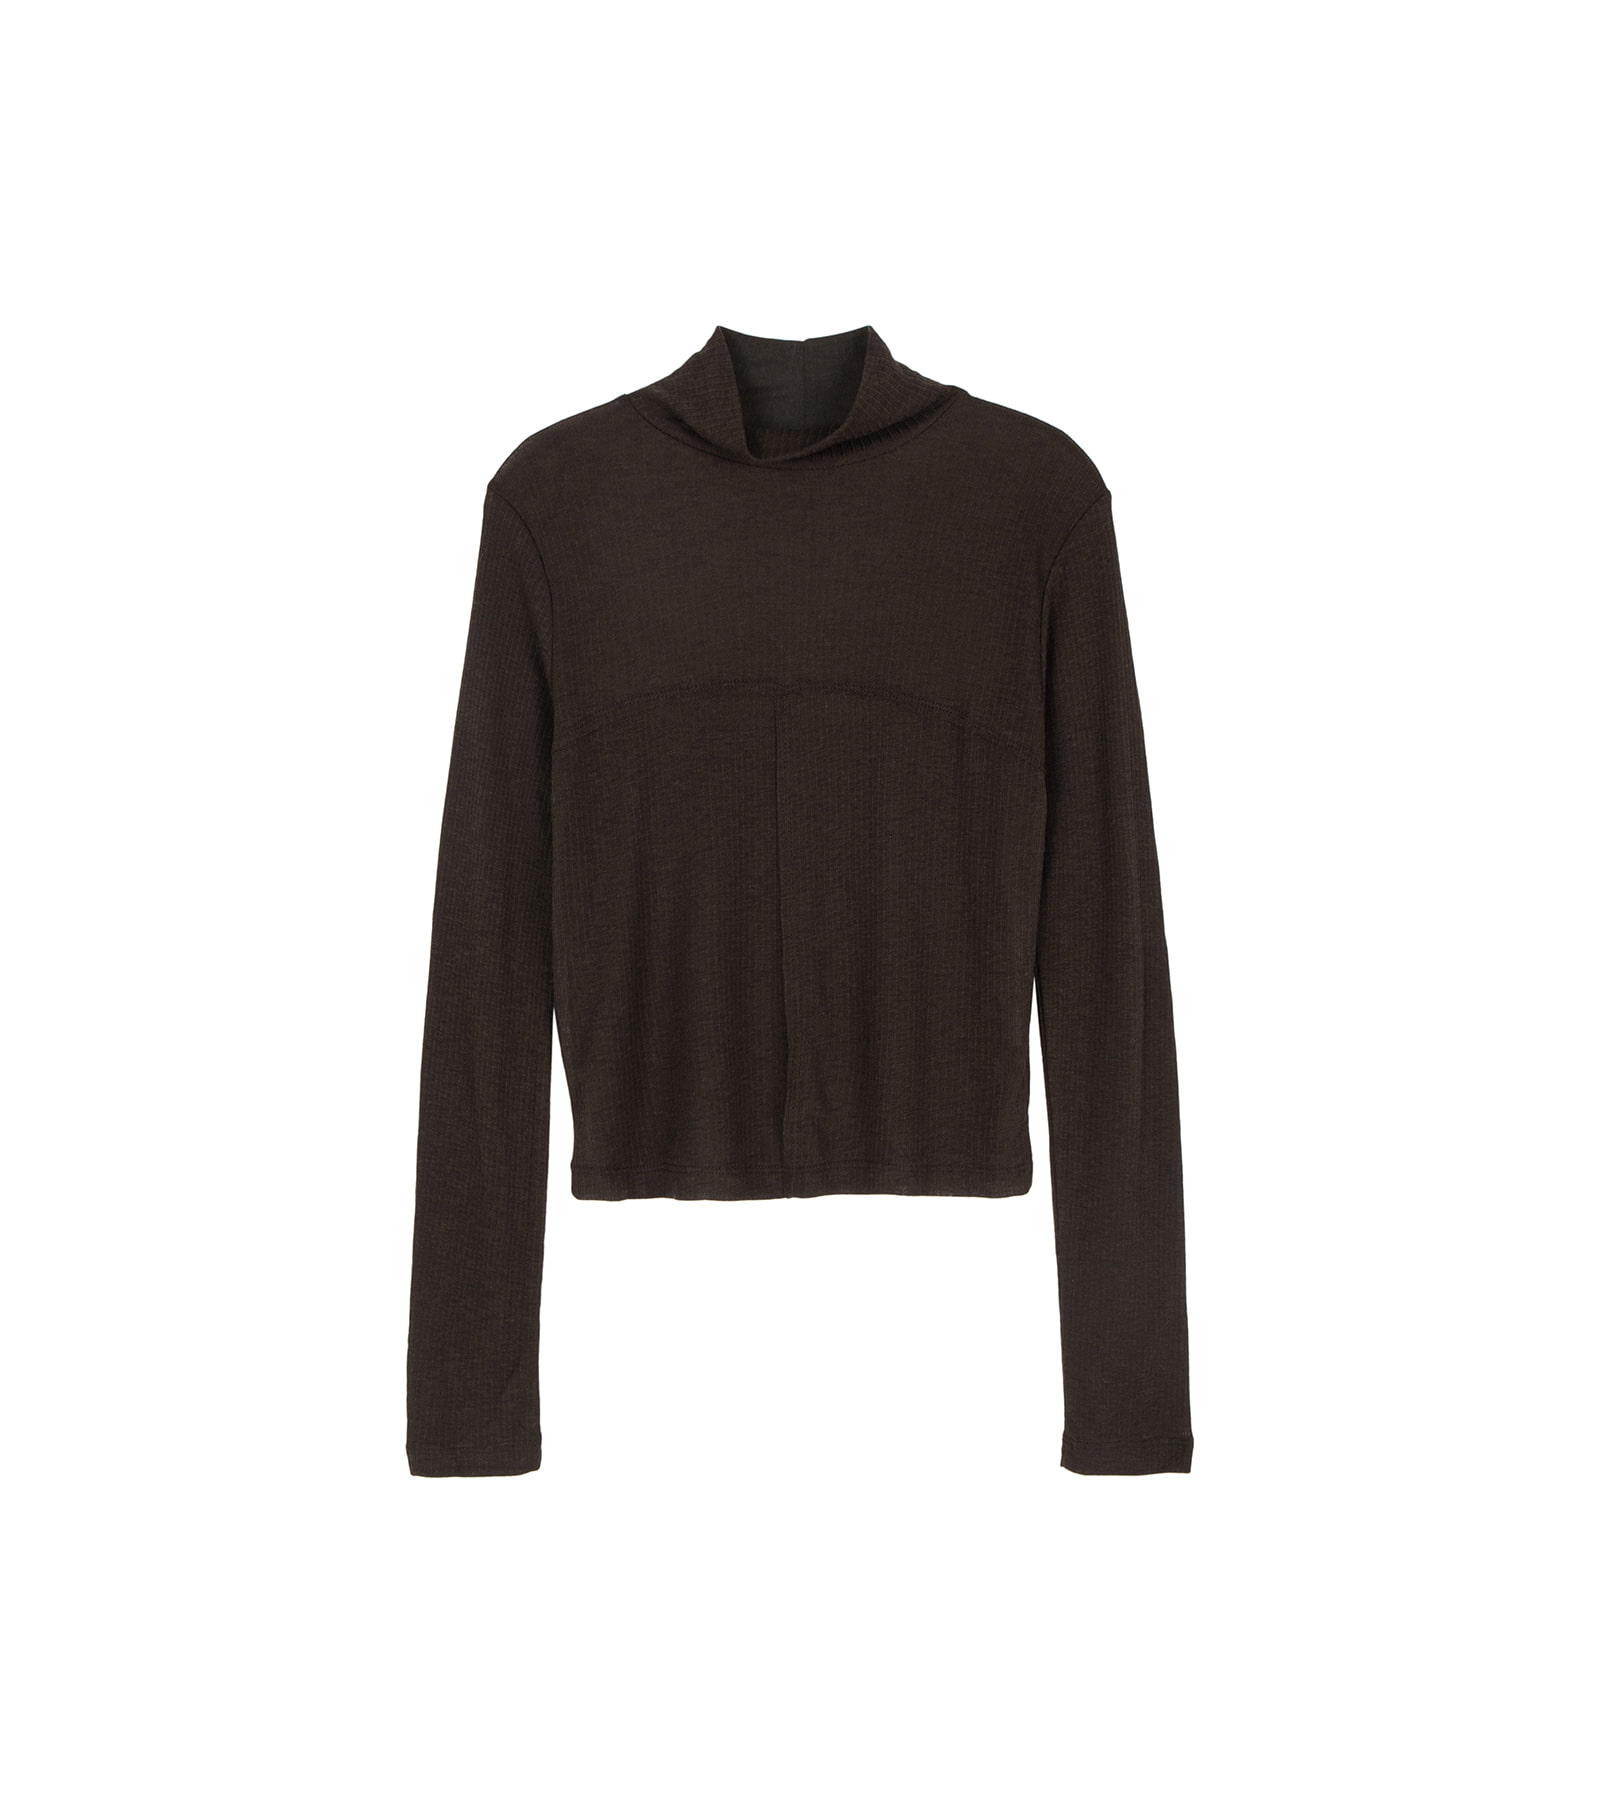 Line part slim turtleneck top